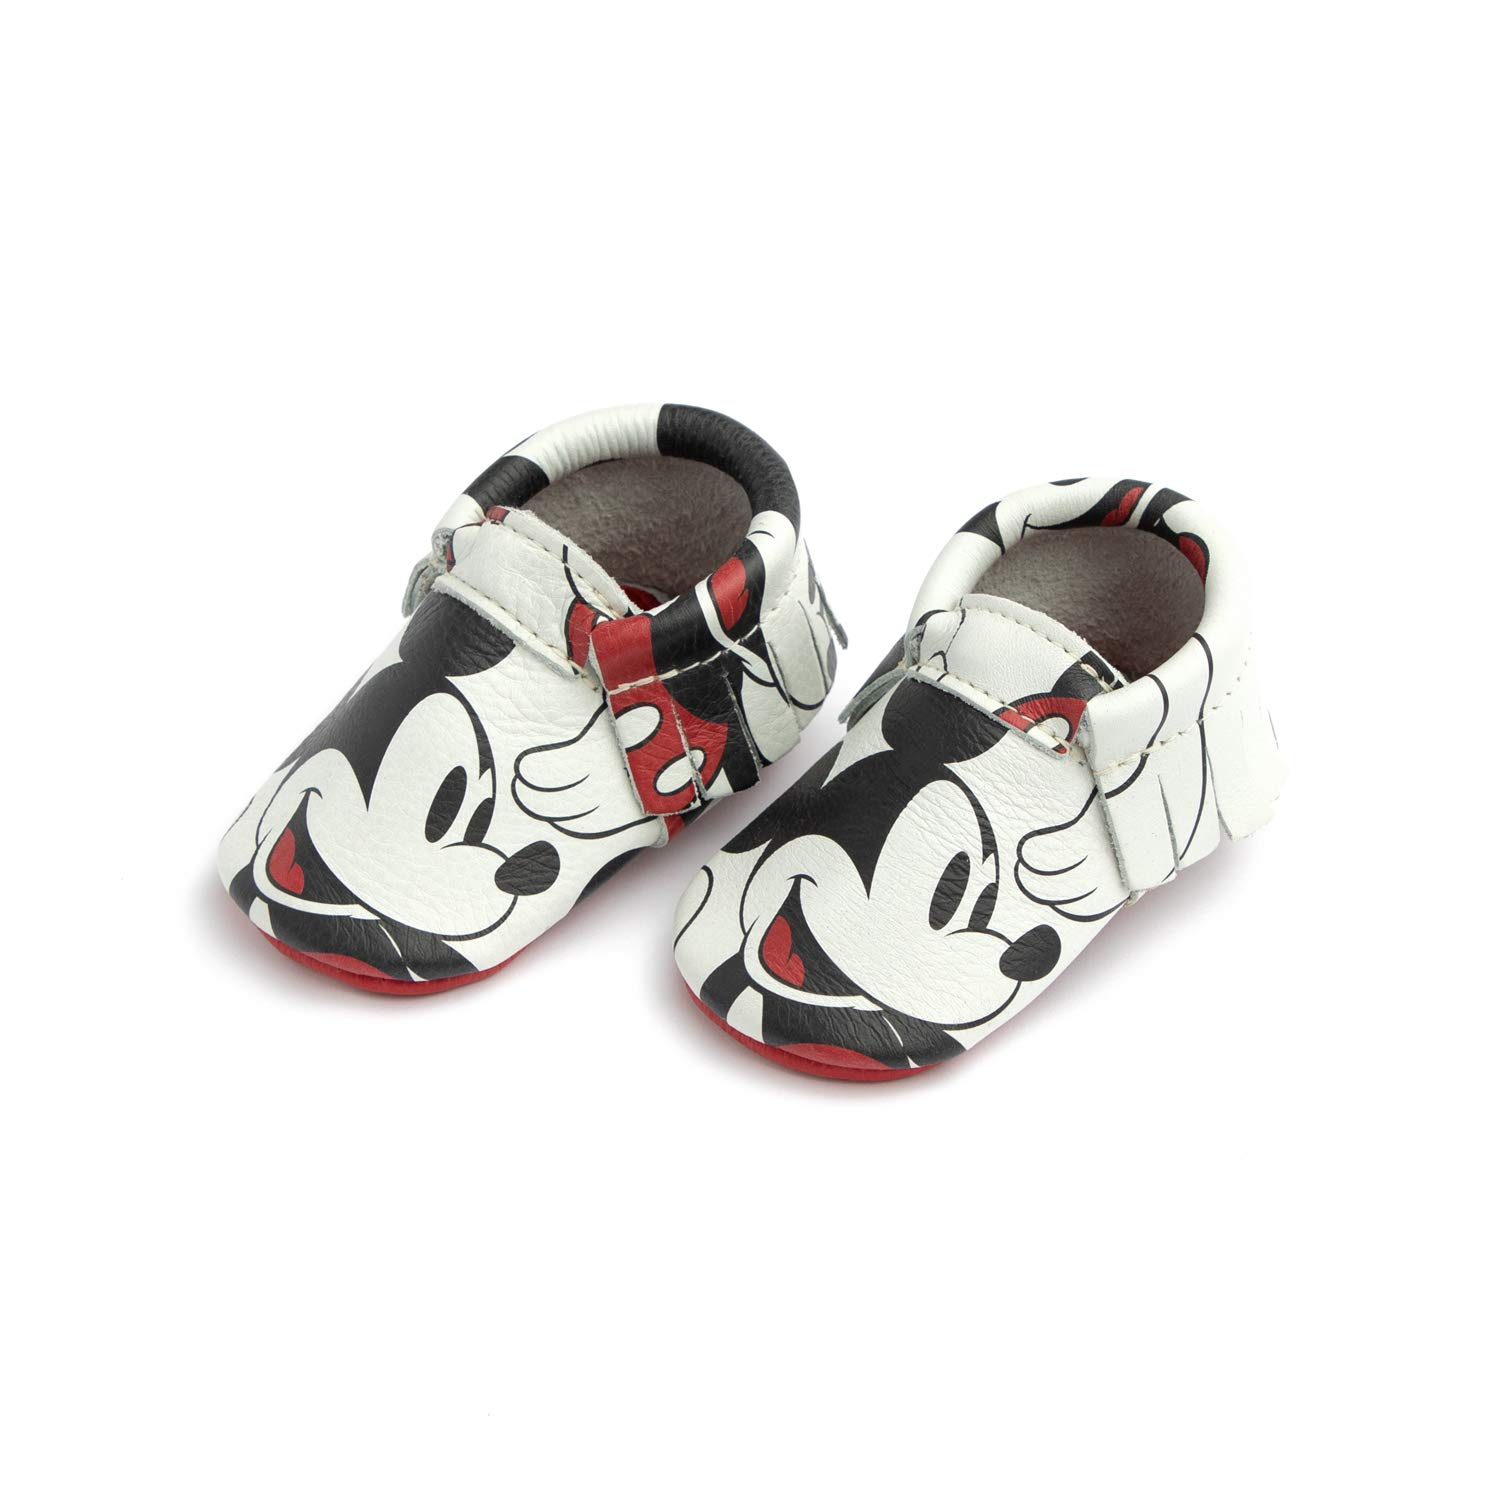 Freshly Picked - Soft Sole Leather Moccasins - Disney Baby Girl Boy Shoes - Size 5 Mickey Mouse by Freshly Picked